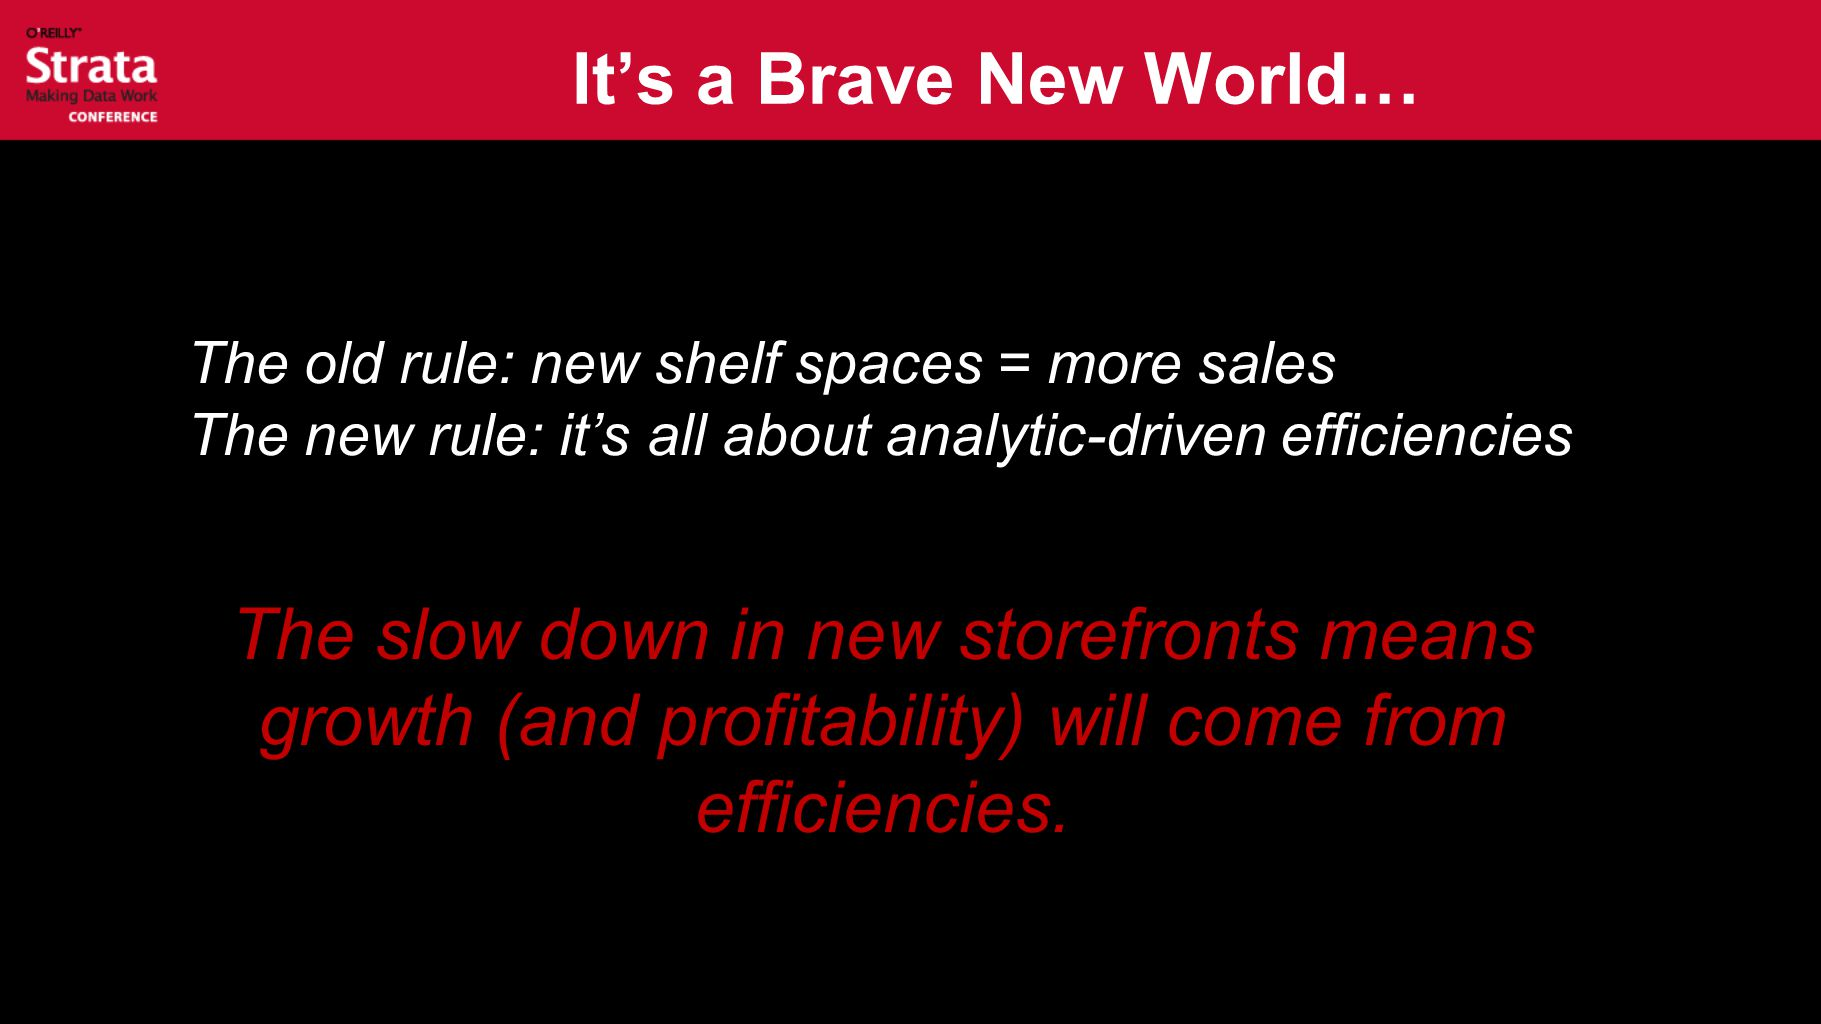 It's a Brave New World… The old rule: new shelf spaces = more sales The new rule: it's all about analytic-driven efficiencies The slow down in new sto